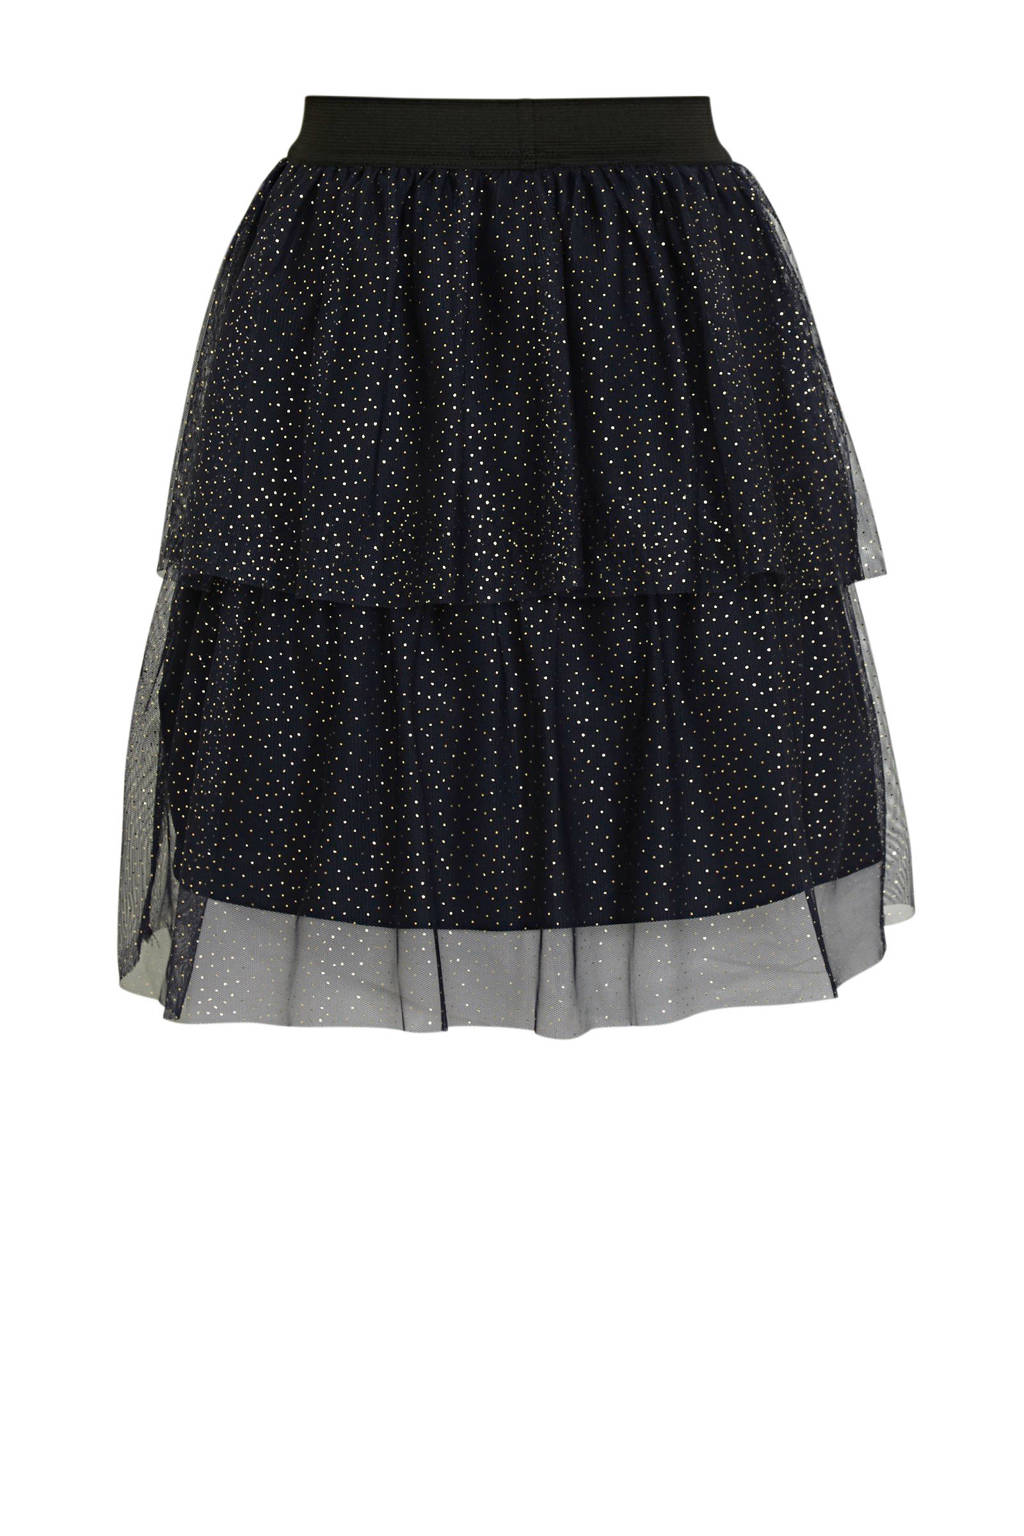 NAME IT KIDS rok Ritty van gerecycled polyester donkerblauw, Donkerblauw